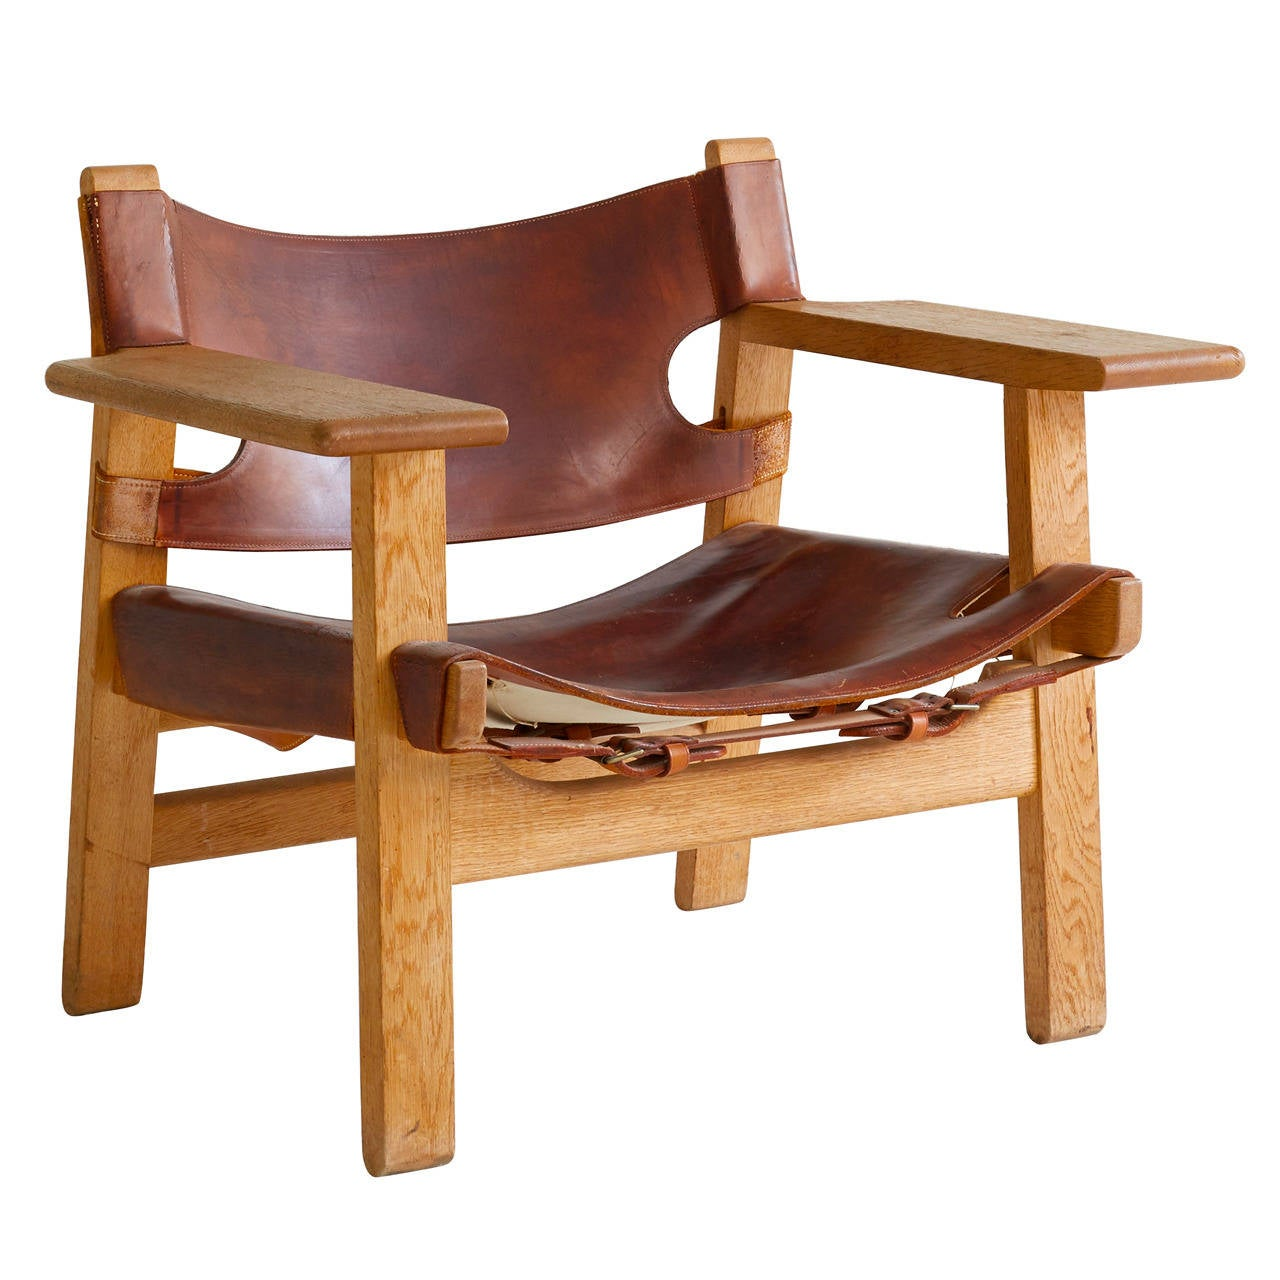 swivel chair in spanish broda cost borge mogensen at 1stdibs for sale